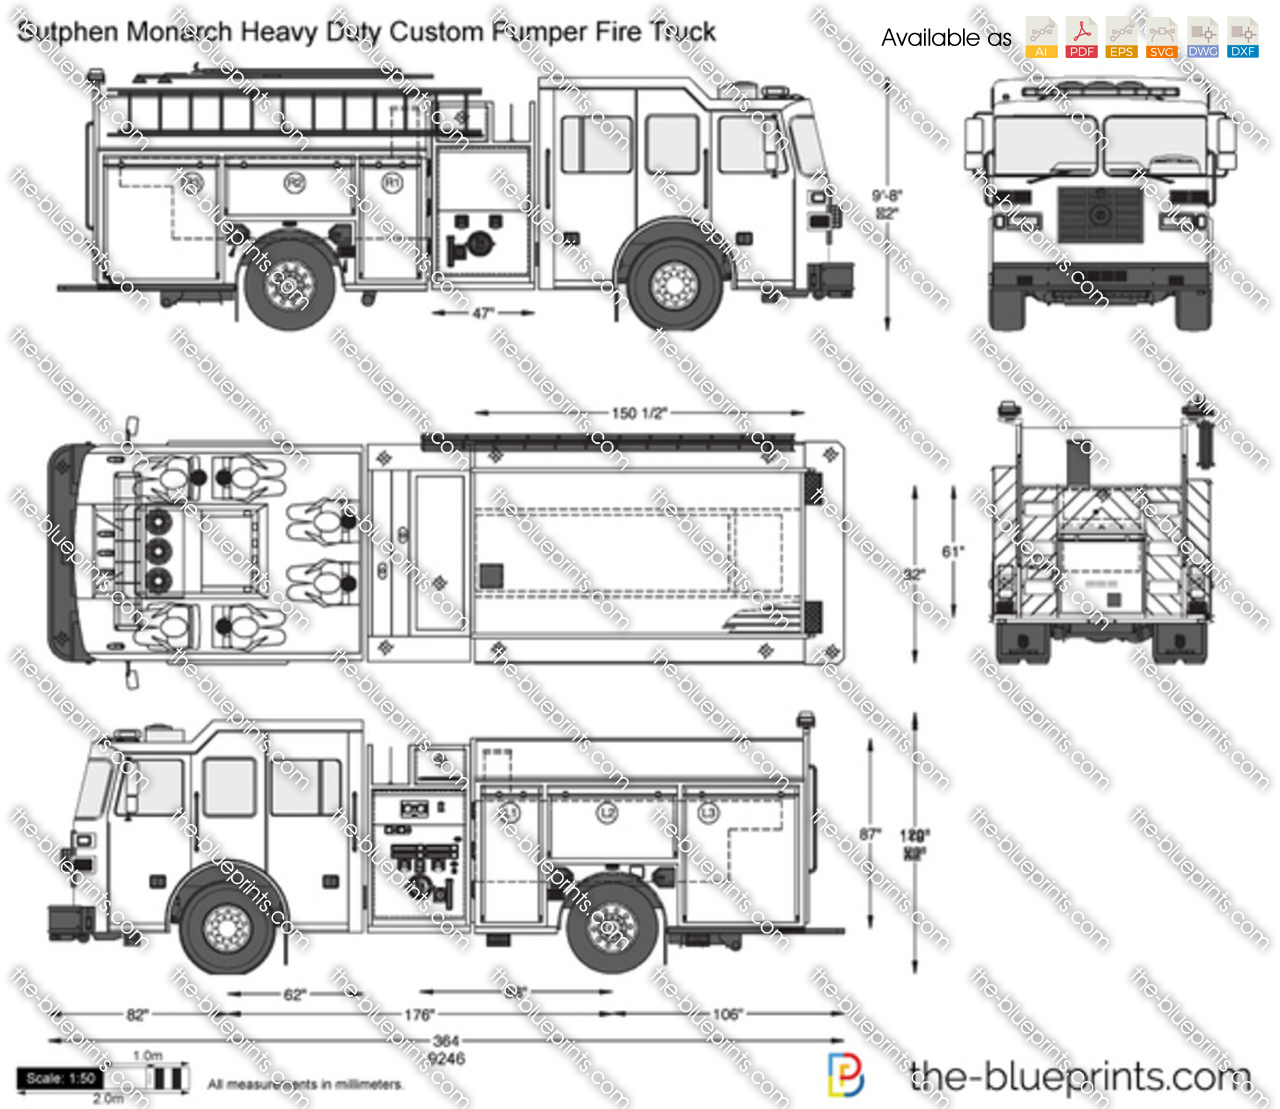 Sutphen Monarch Heavy Duty Custom Pumper Fire Truck Vector